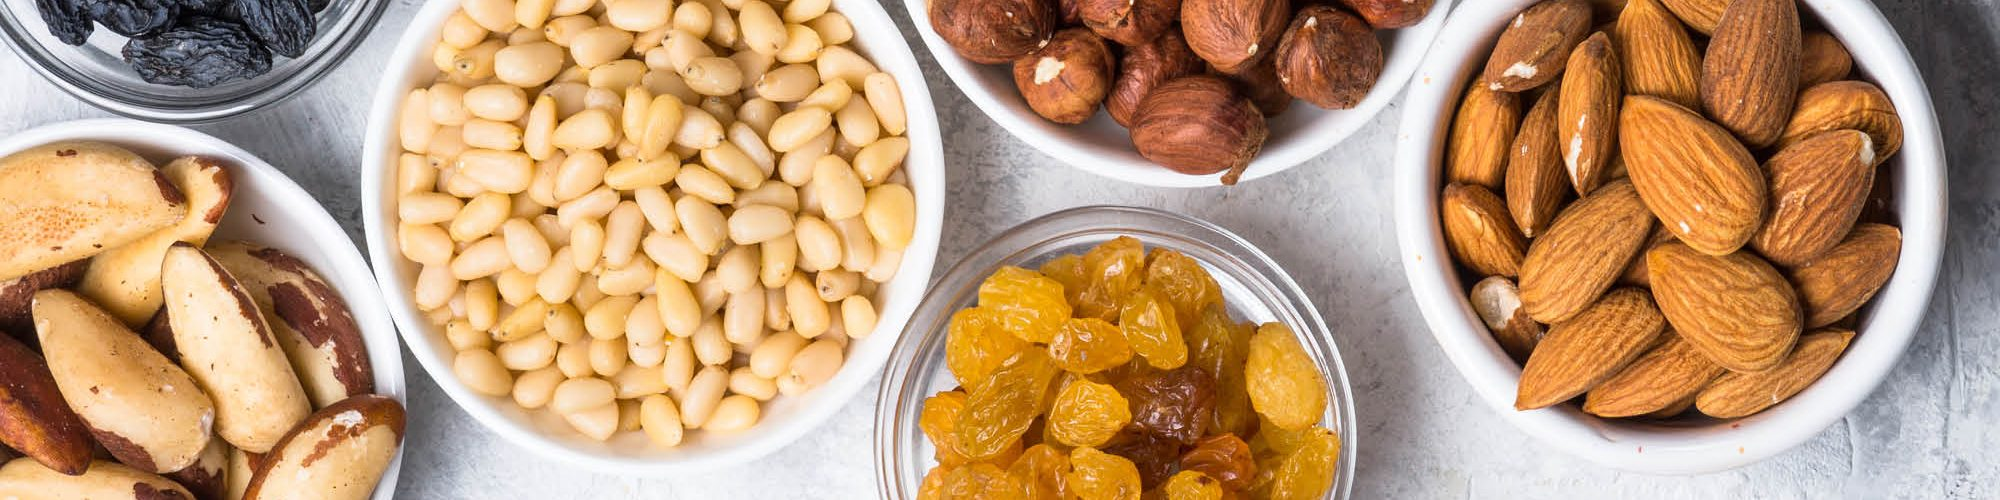 Lots of small bowls of dried fruits and nuts on a marble counter